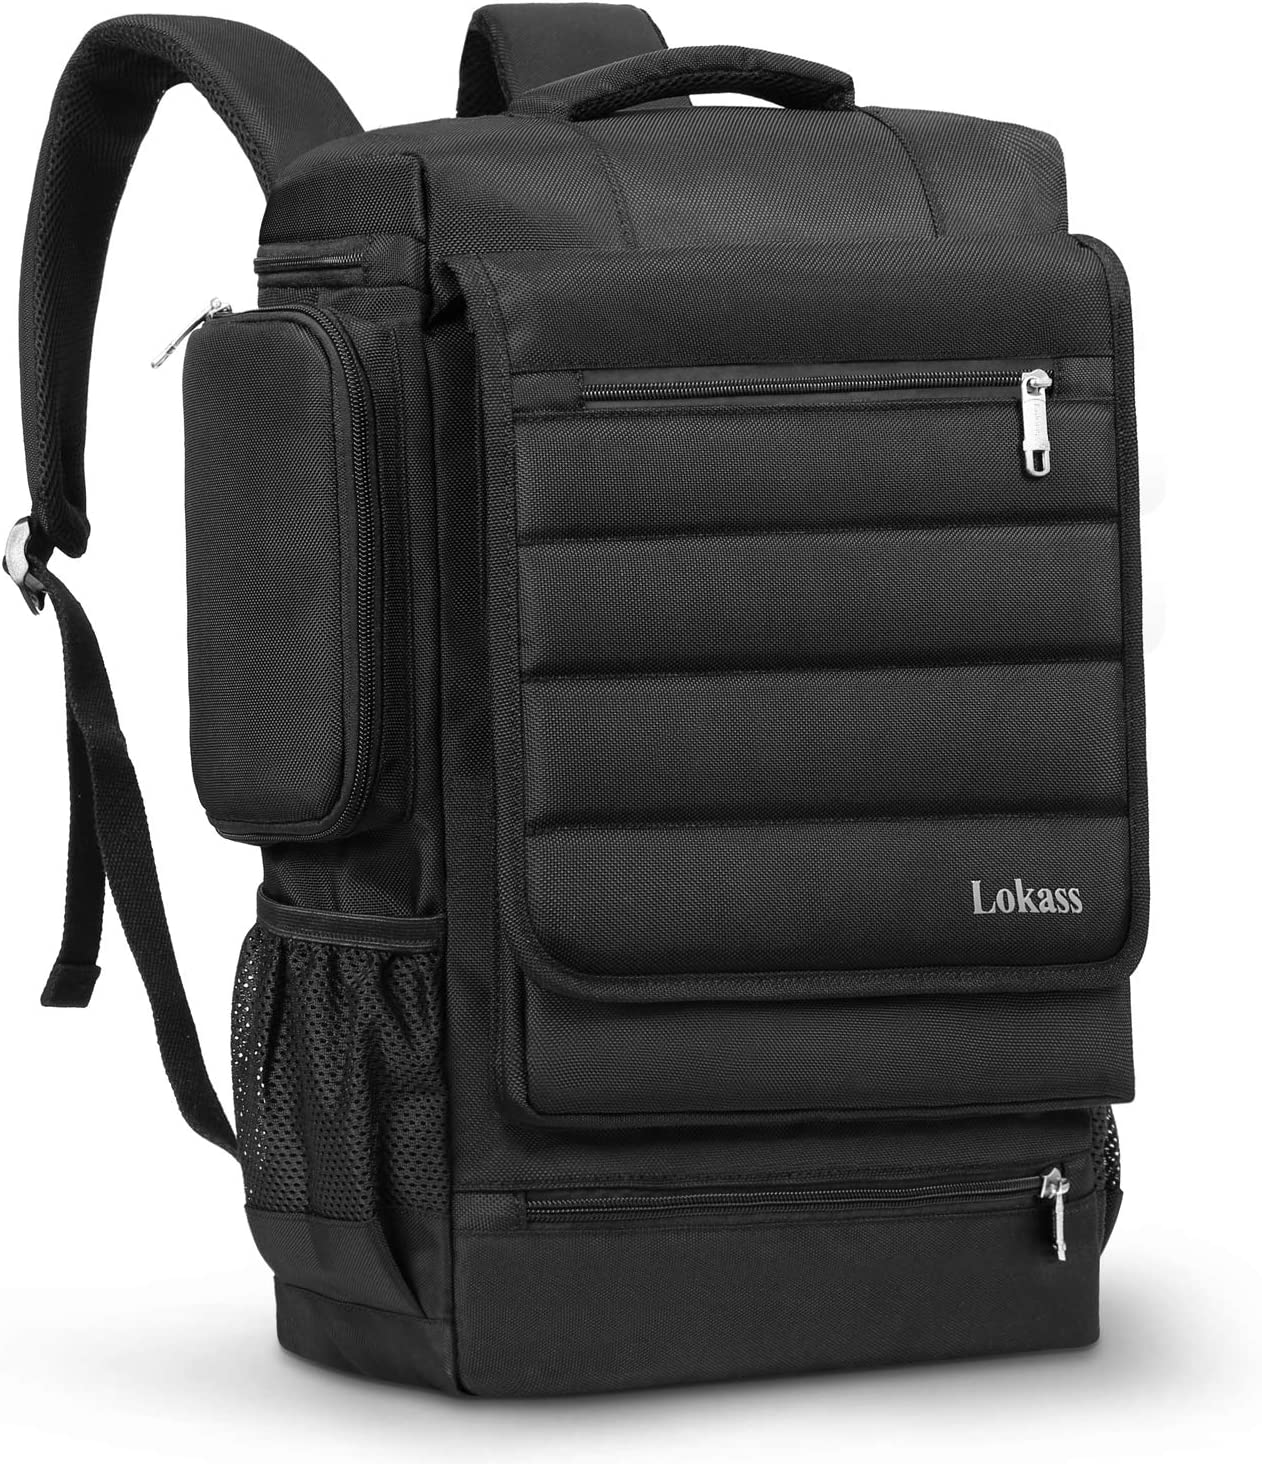 LOKASS 17.3 Inch Laptop Backpack for Men Women, Durable Travel Backpack Water Resistant Computer Bag Rucksack Hiking Knapsack College Bookbag Fits up to 17-17.3 Inches Laptop Notebooks, Black